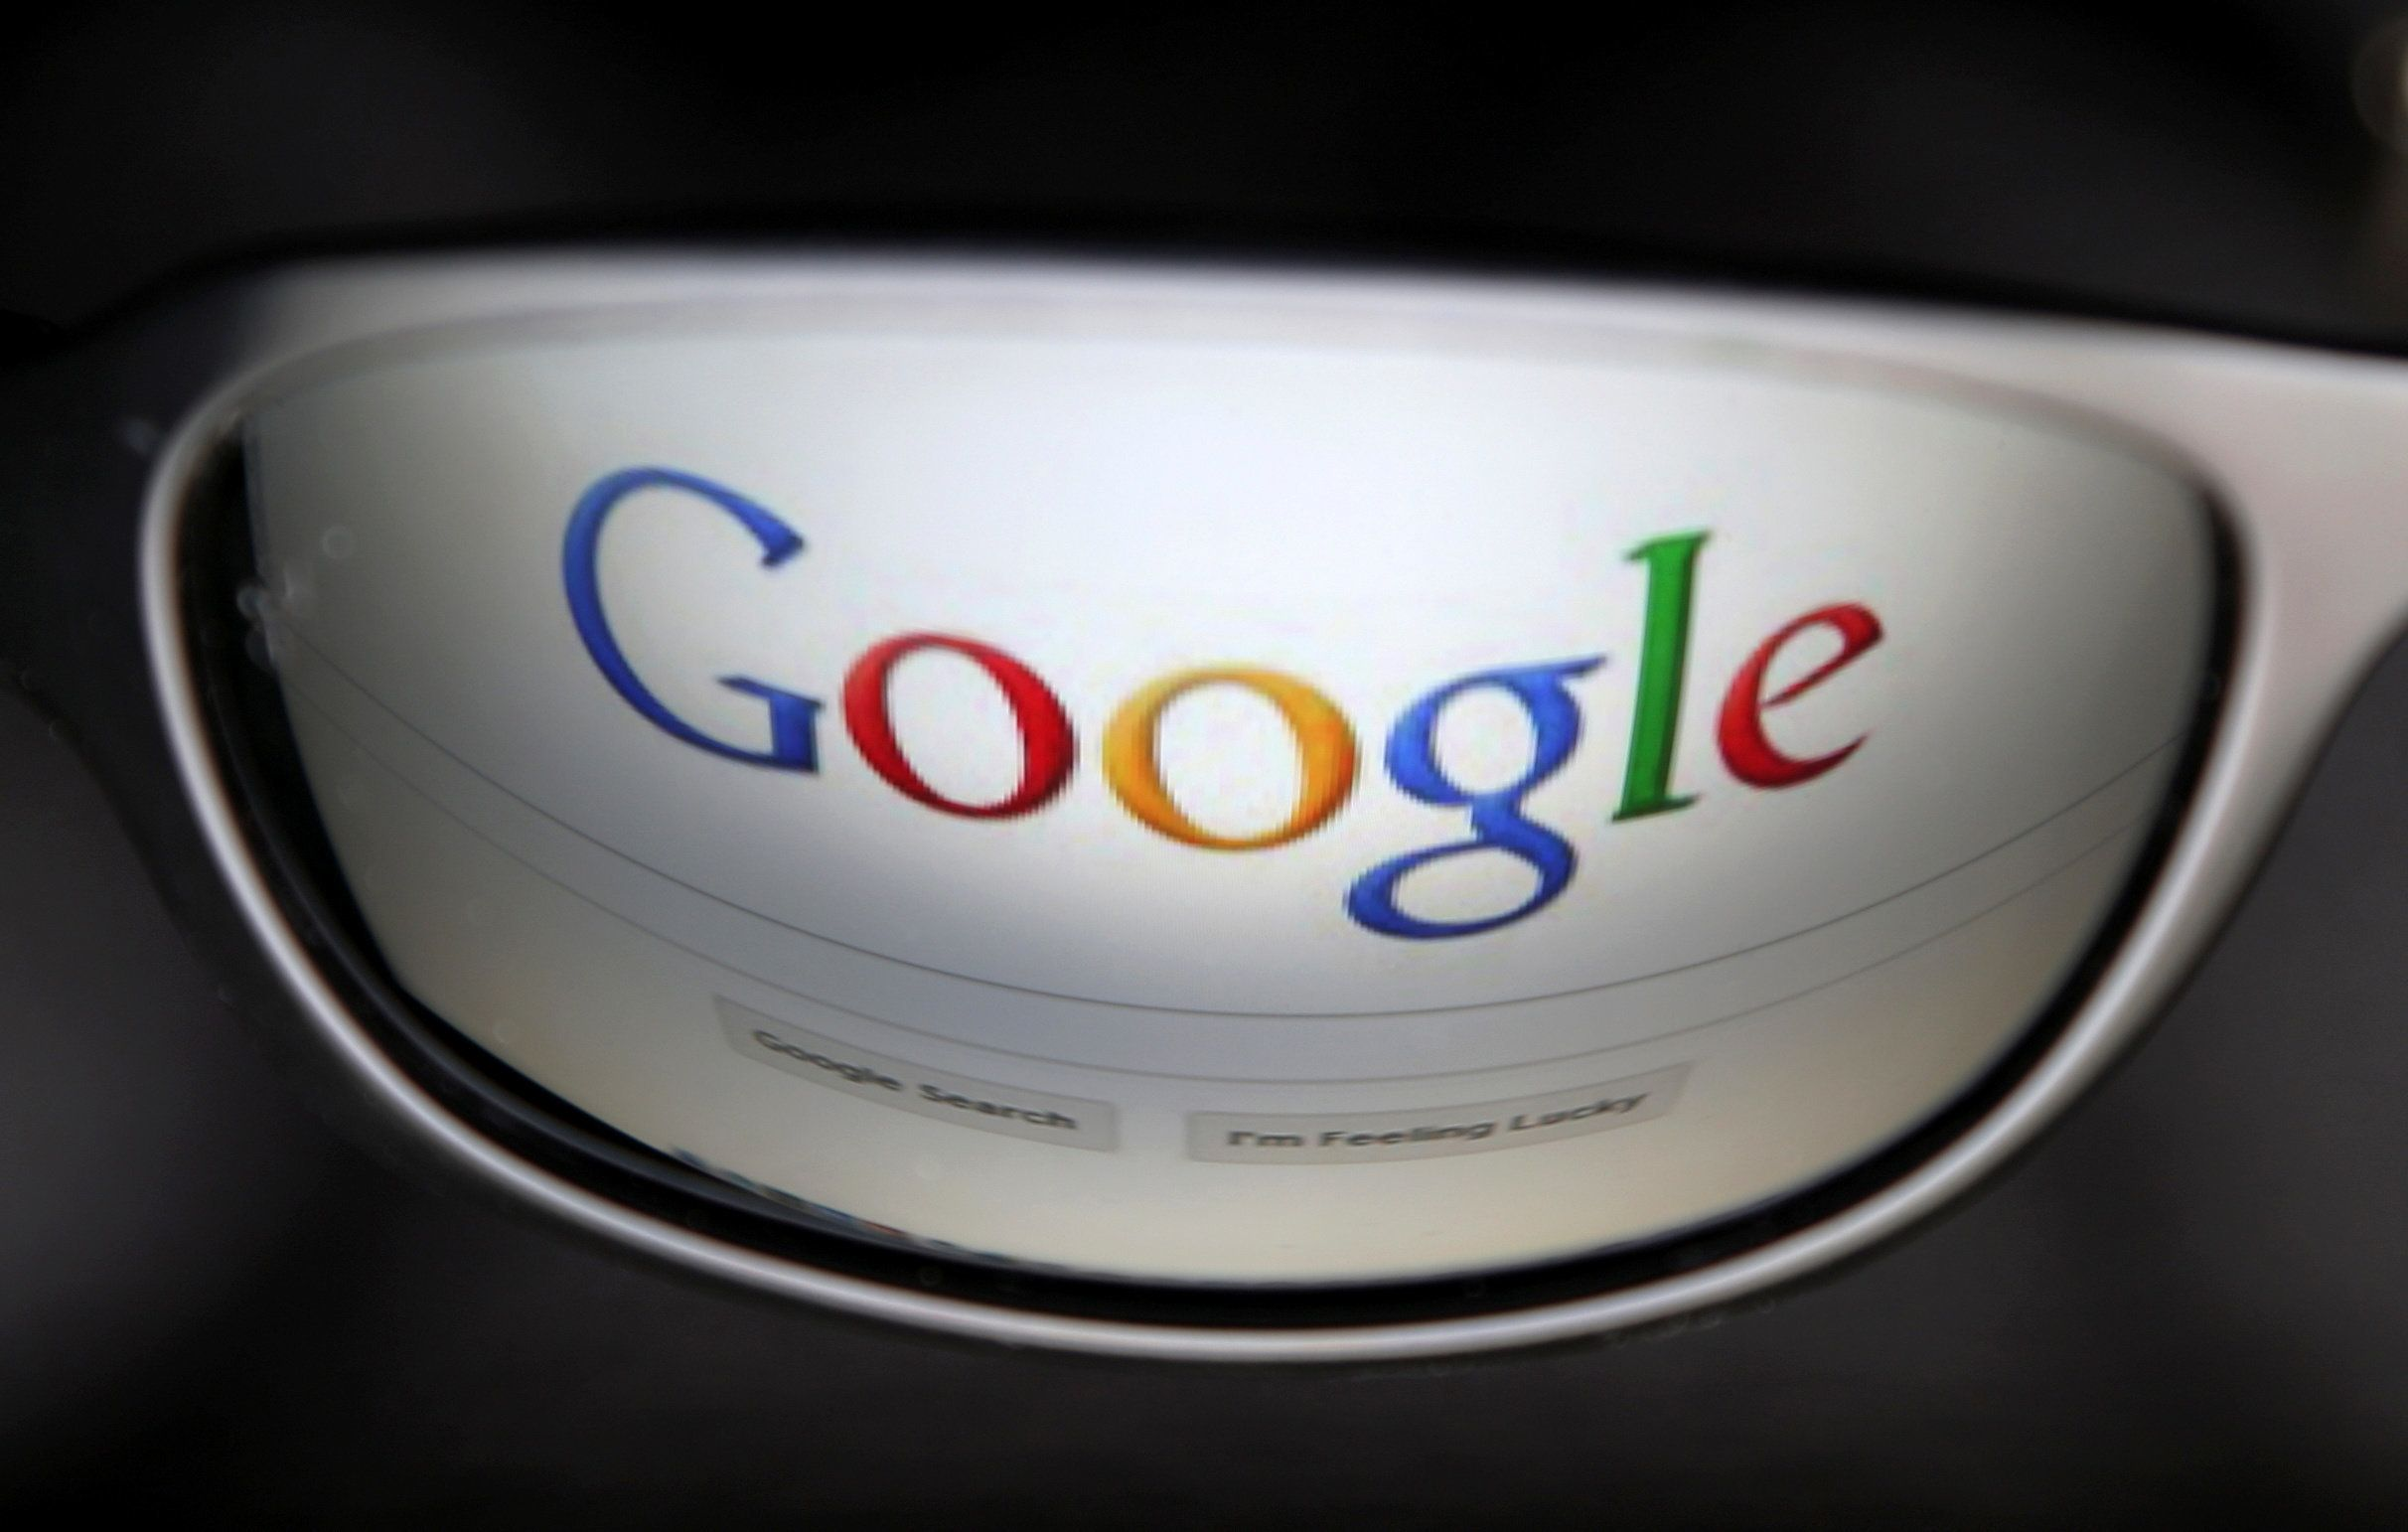 Google Cancels 'Town Hall' On Gender Dispute Over Fears Of Online Harassment By Far-Right